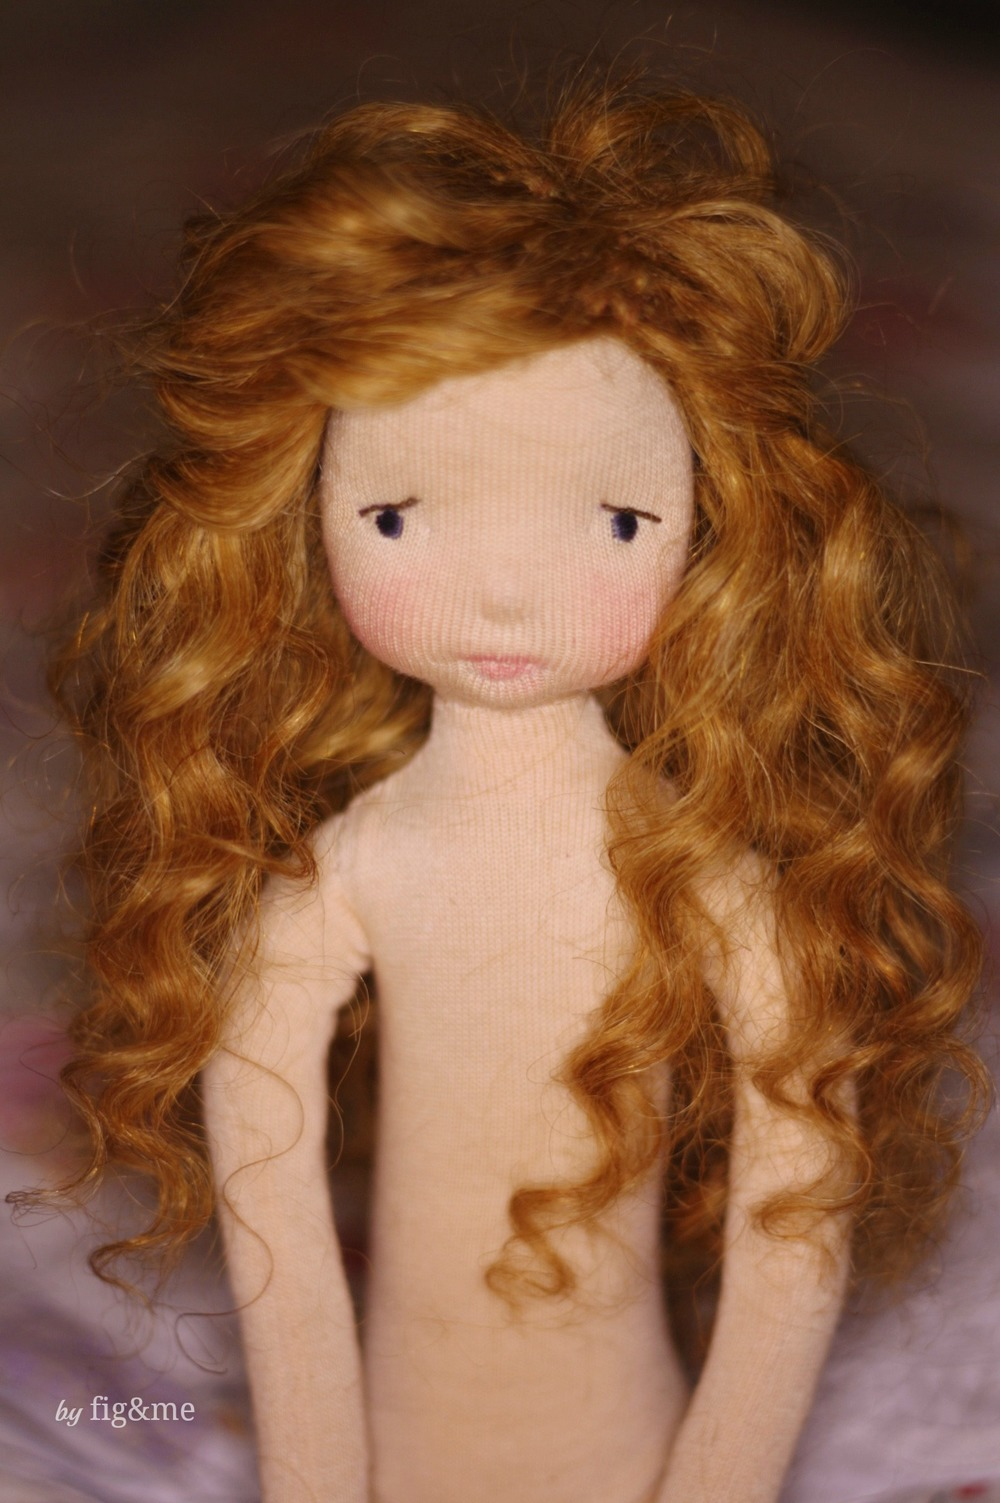 Little Melina, a Mannikin doll by Fig&me